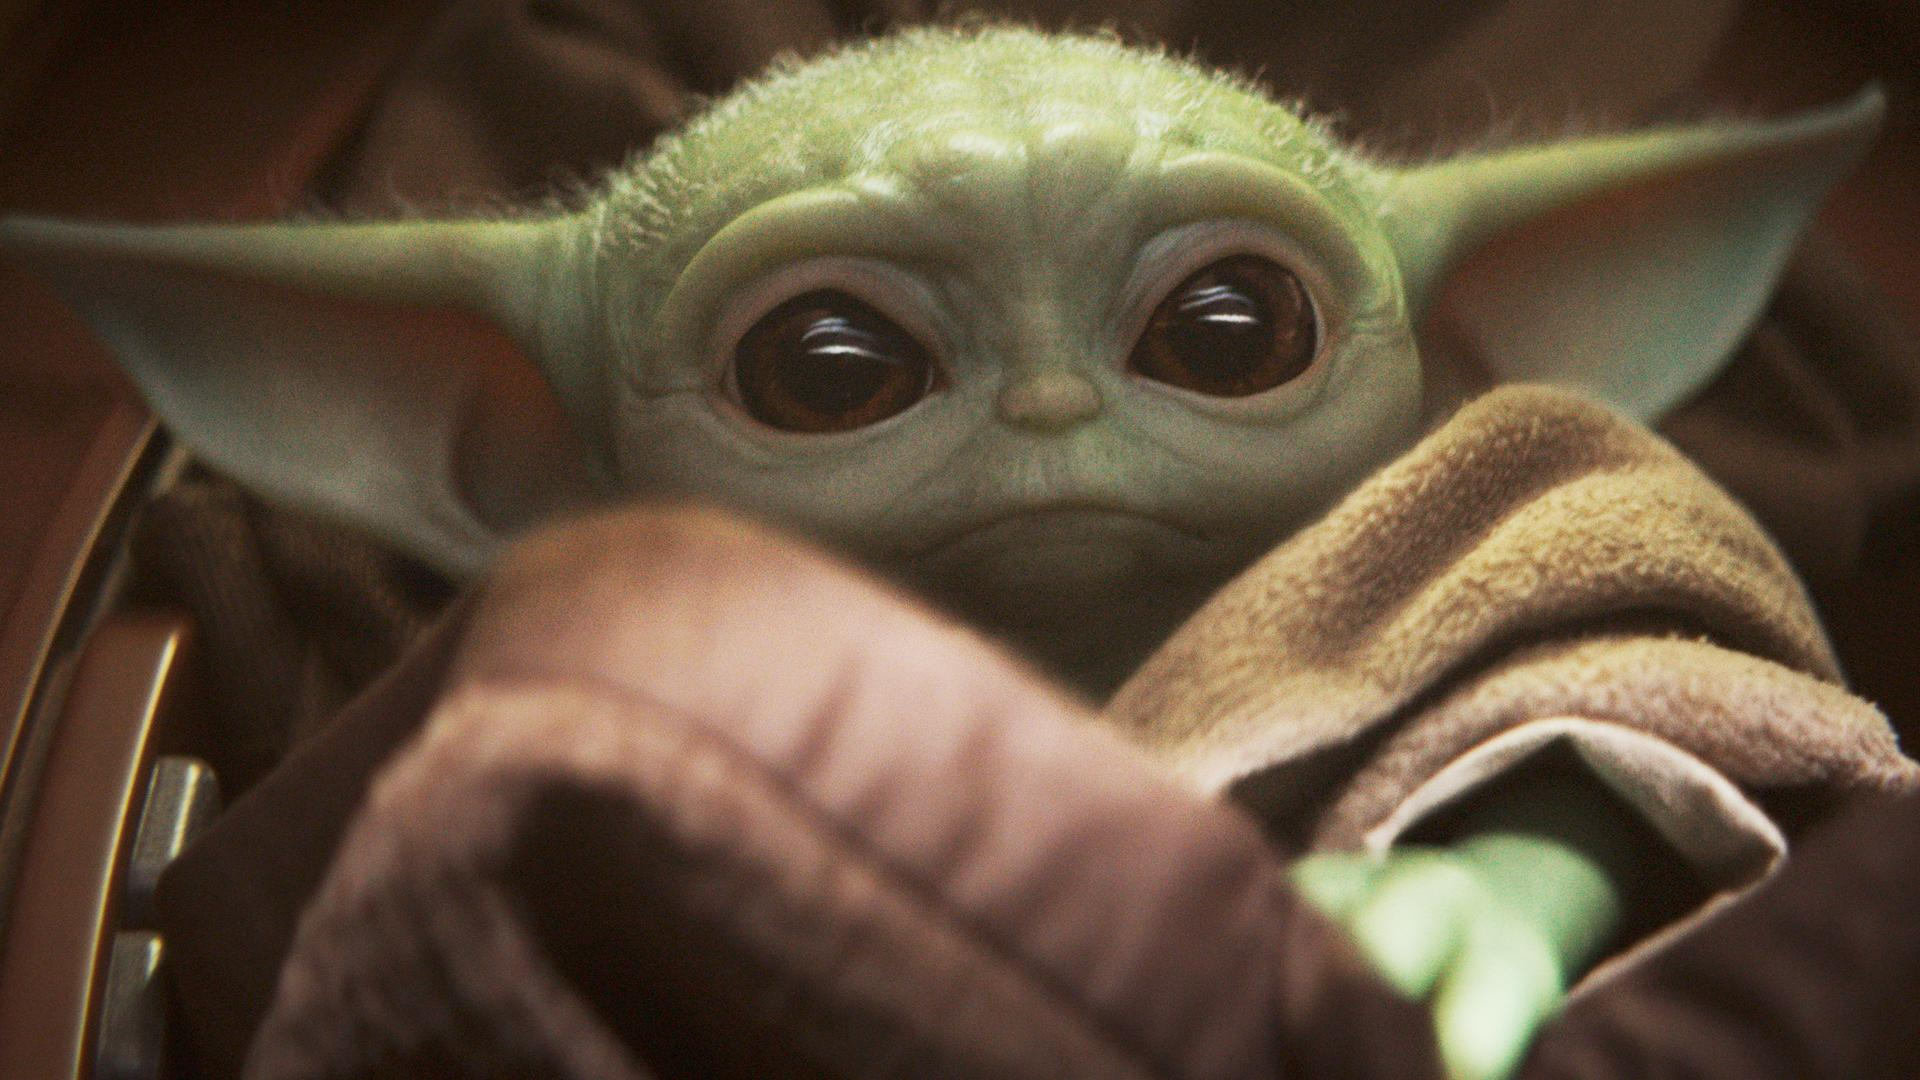 Baby Yoda GIFs Restored by Giphy After 'Confusion' Over Copyrights